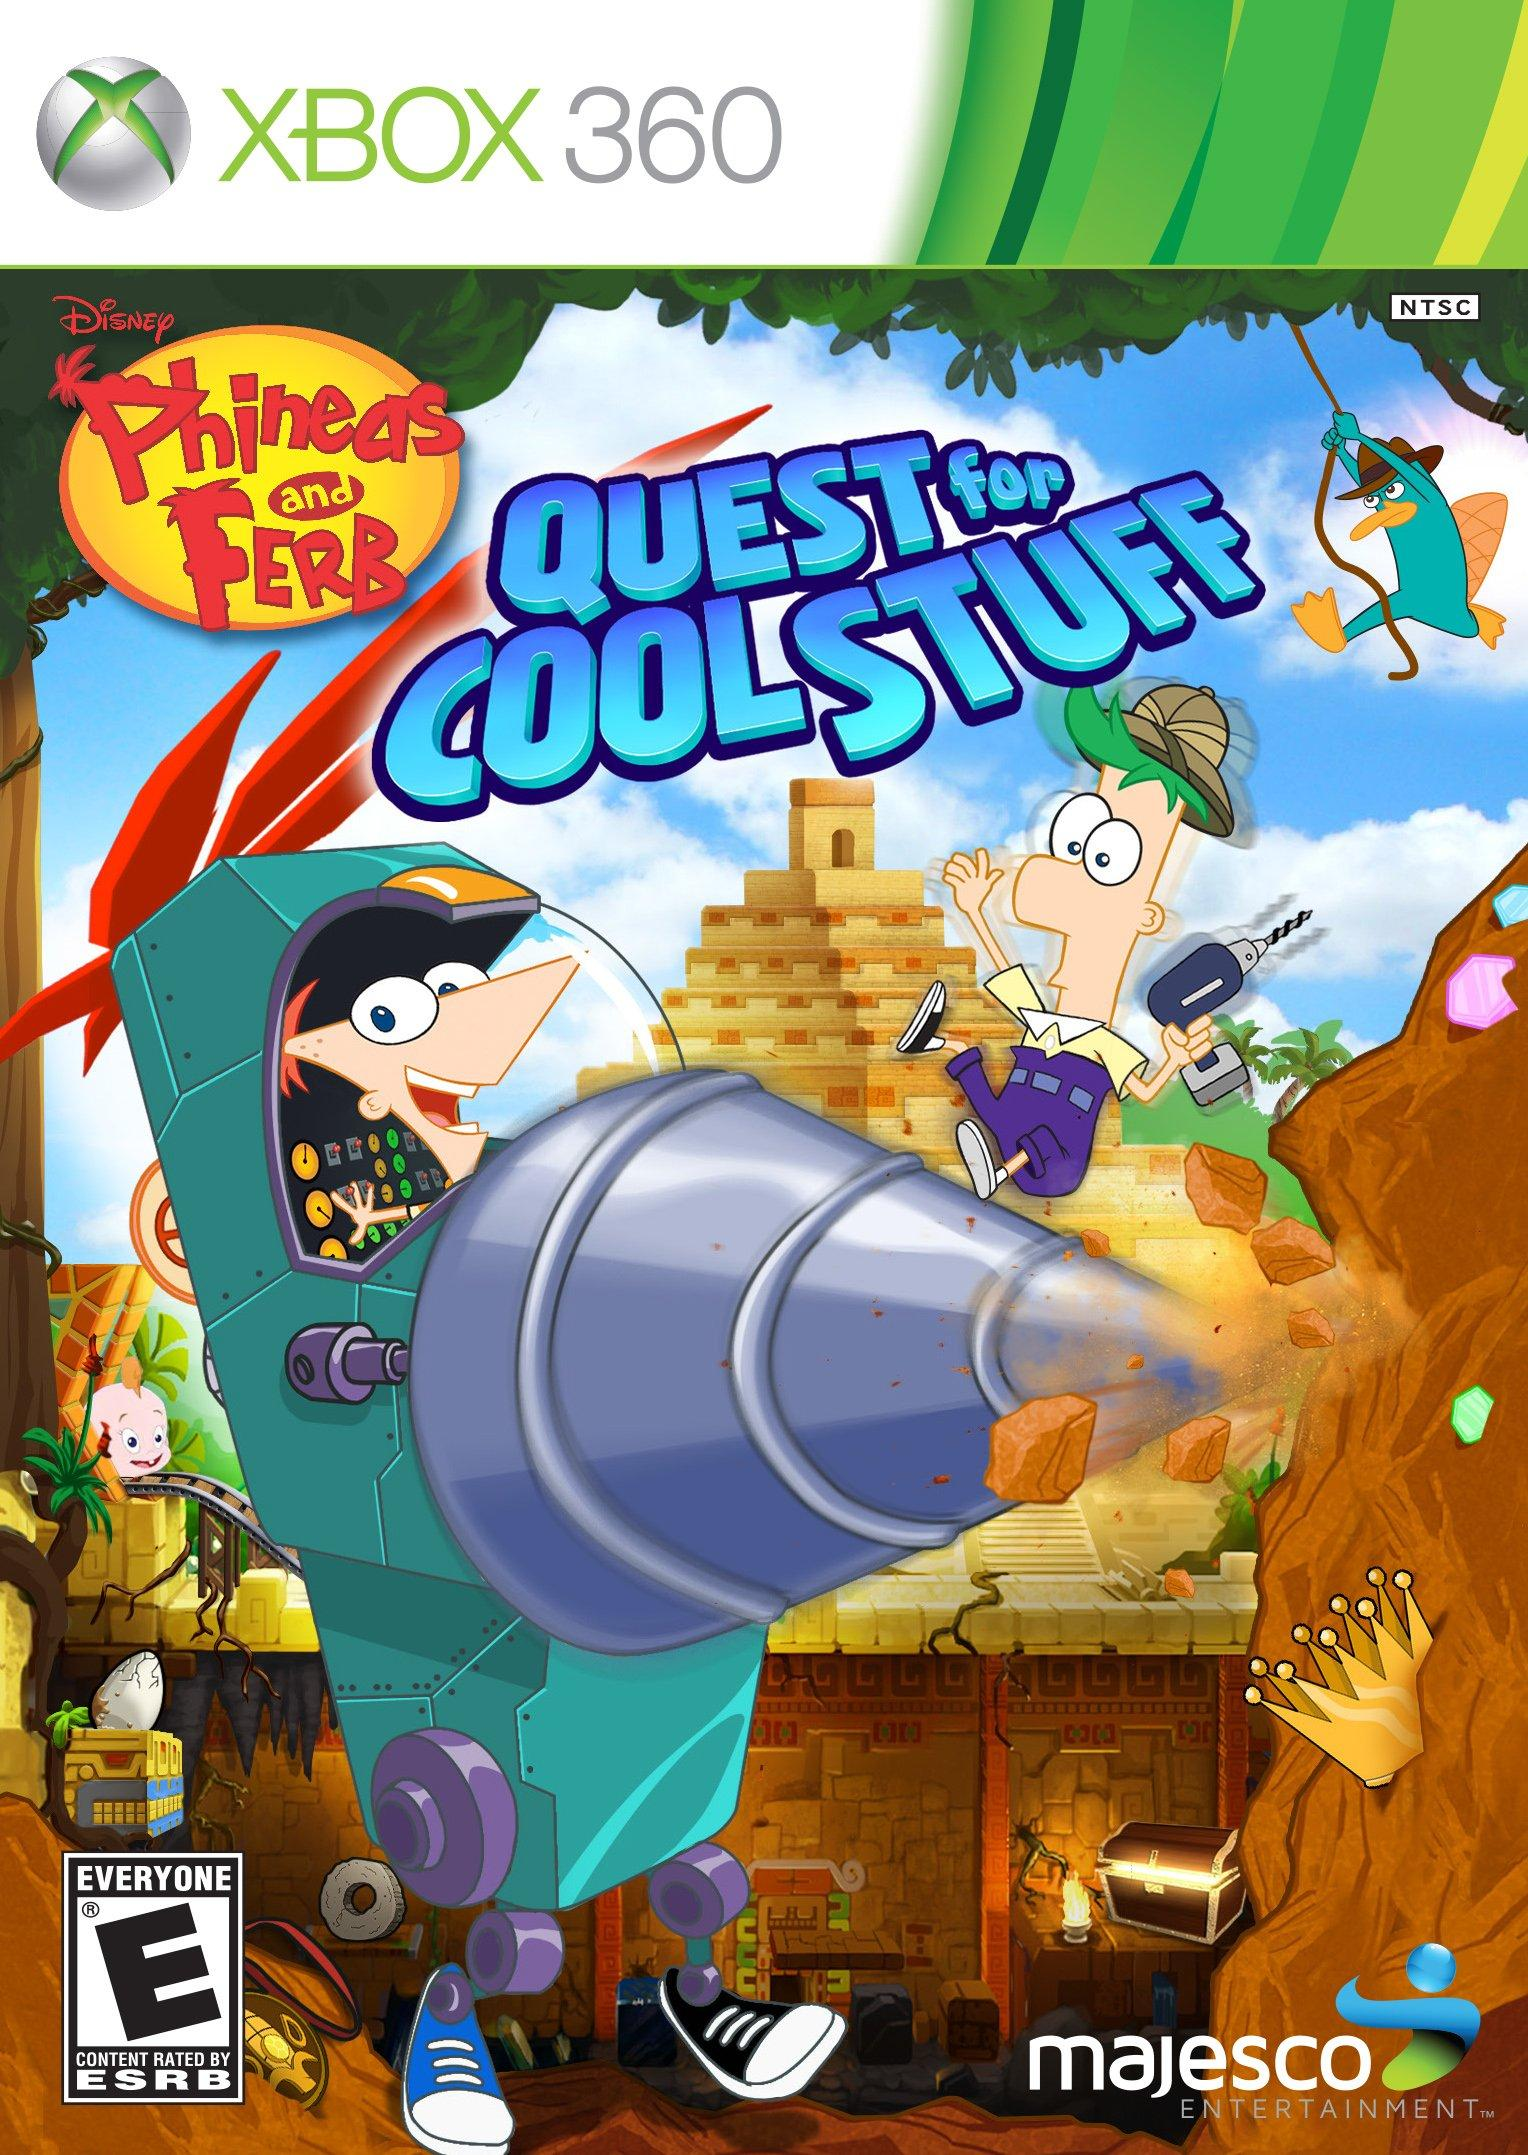 Ferb Images phineas ferb quest for cool stuff